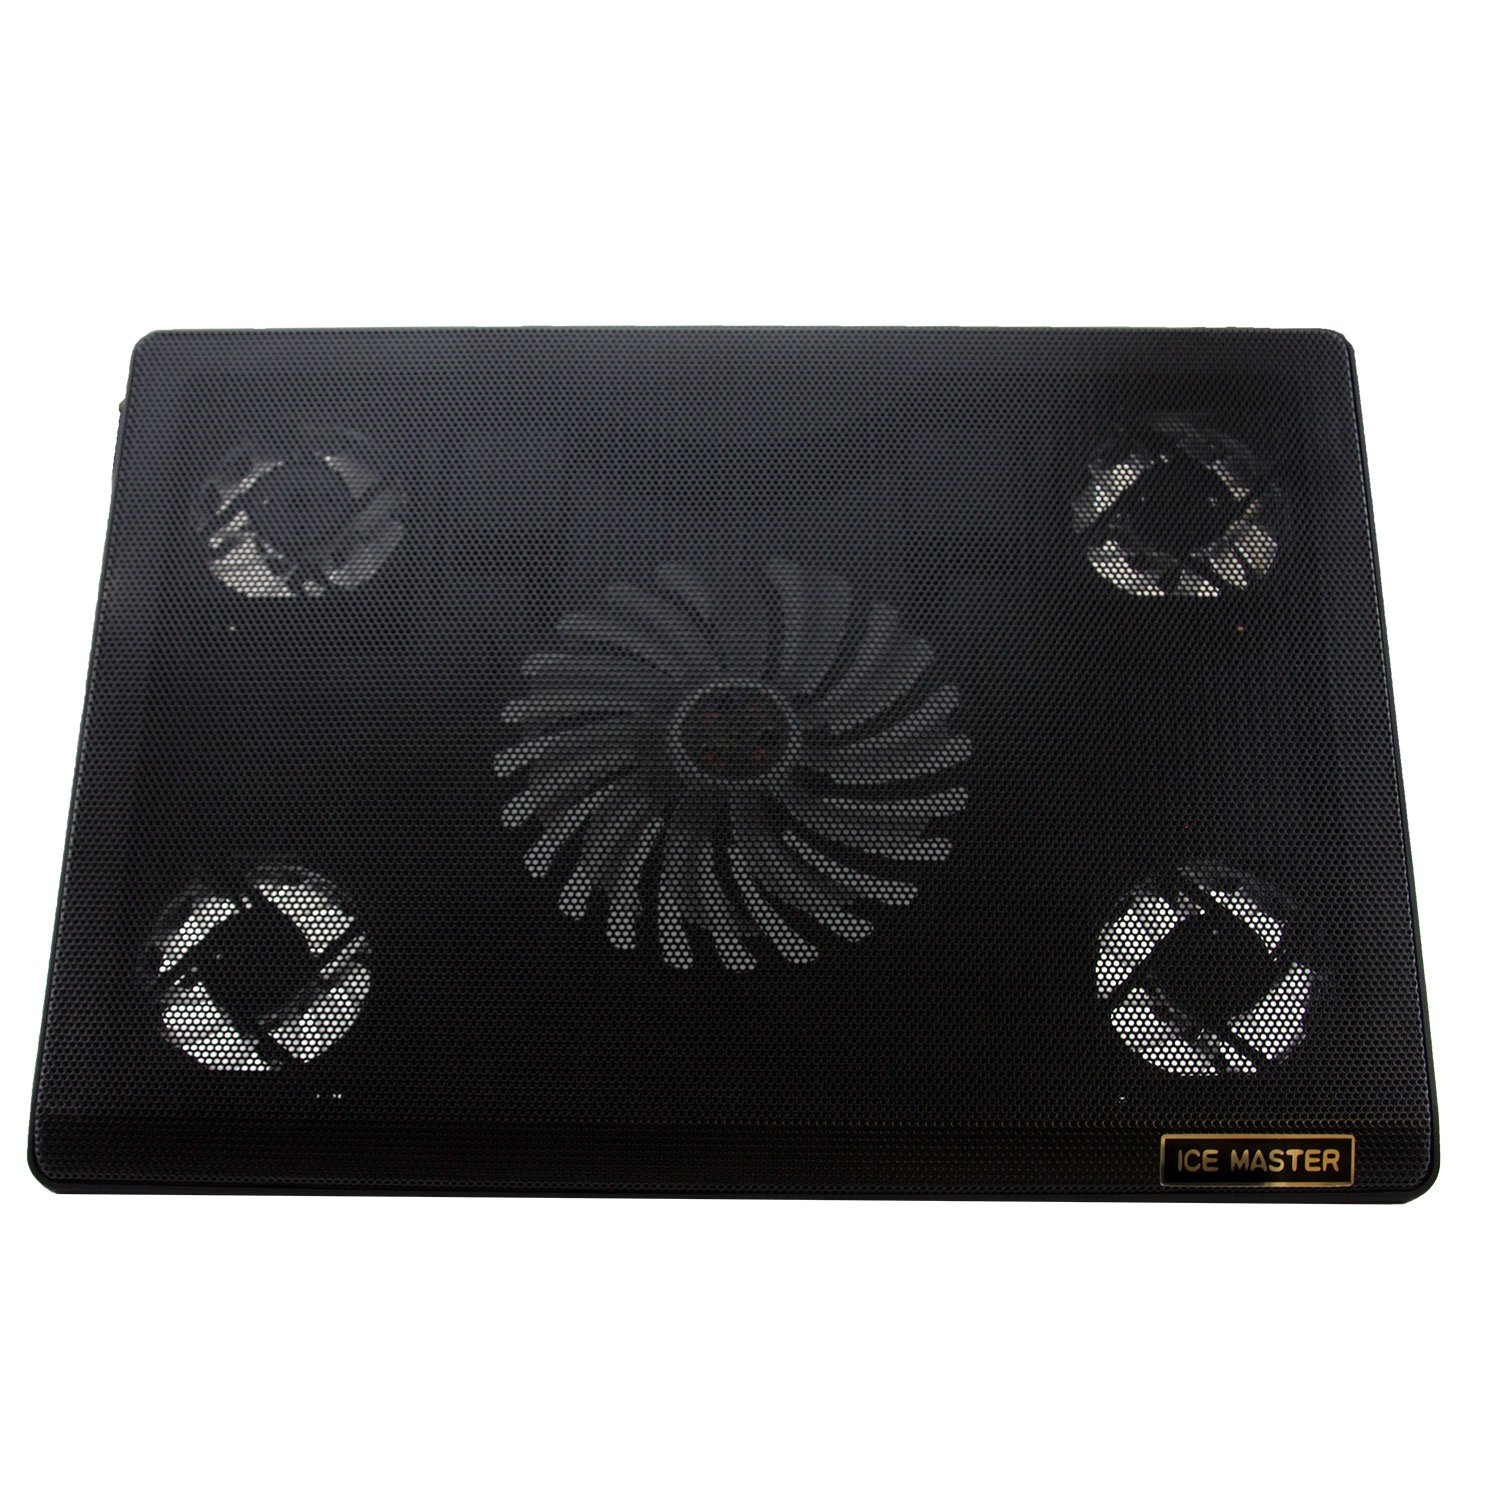 Top 10 Best Laptop Cooling Pads Reviews in 2020 1